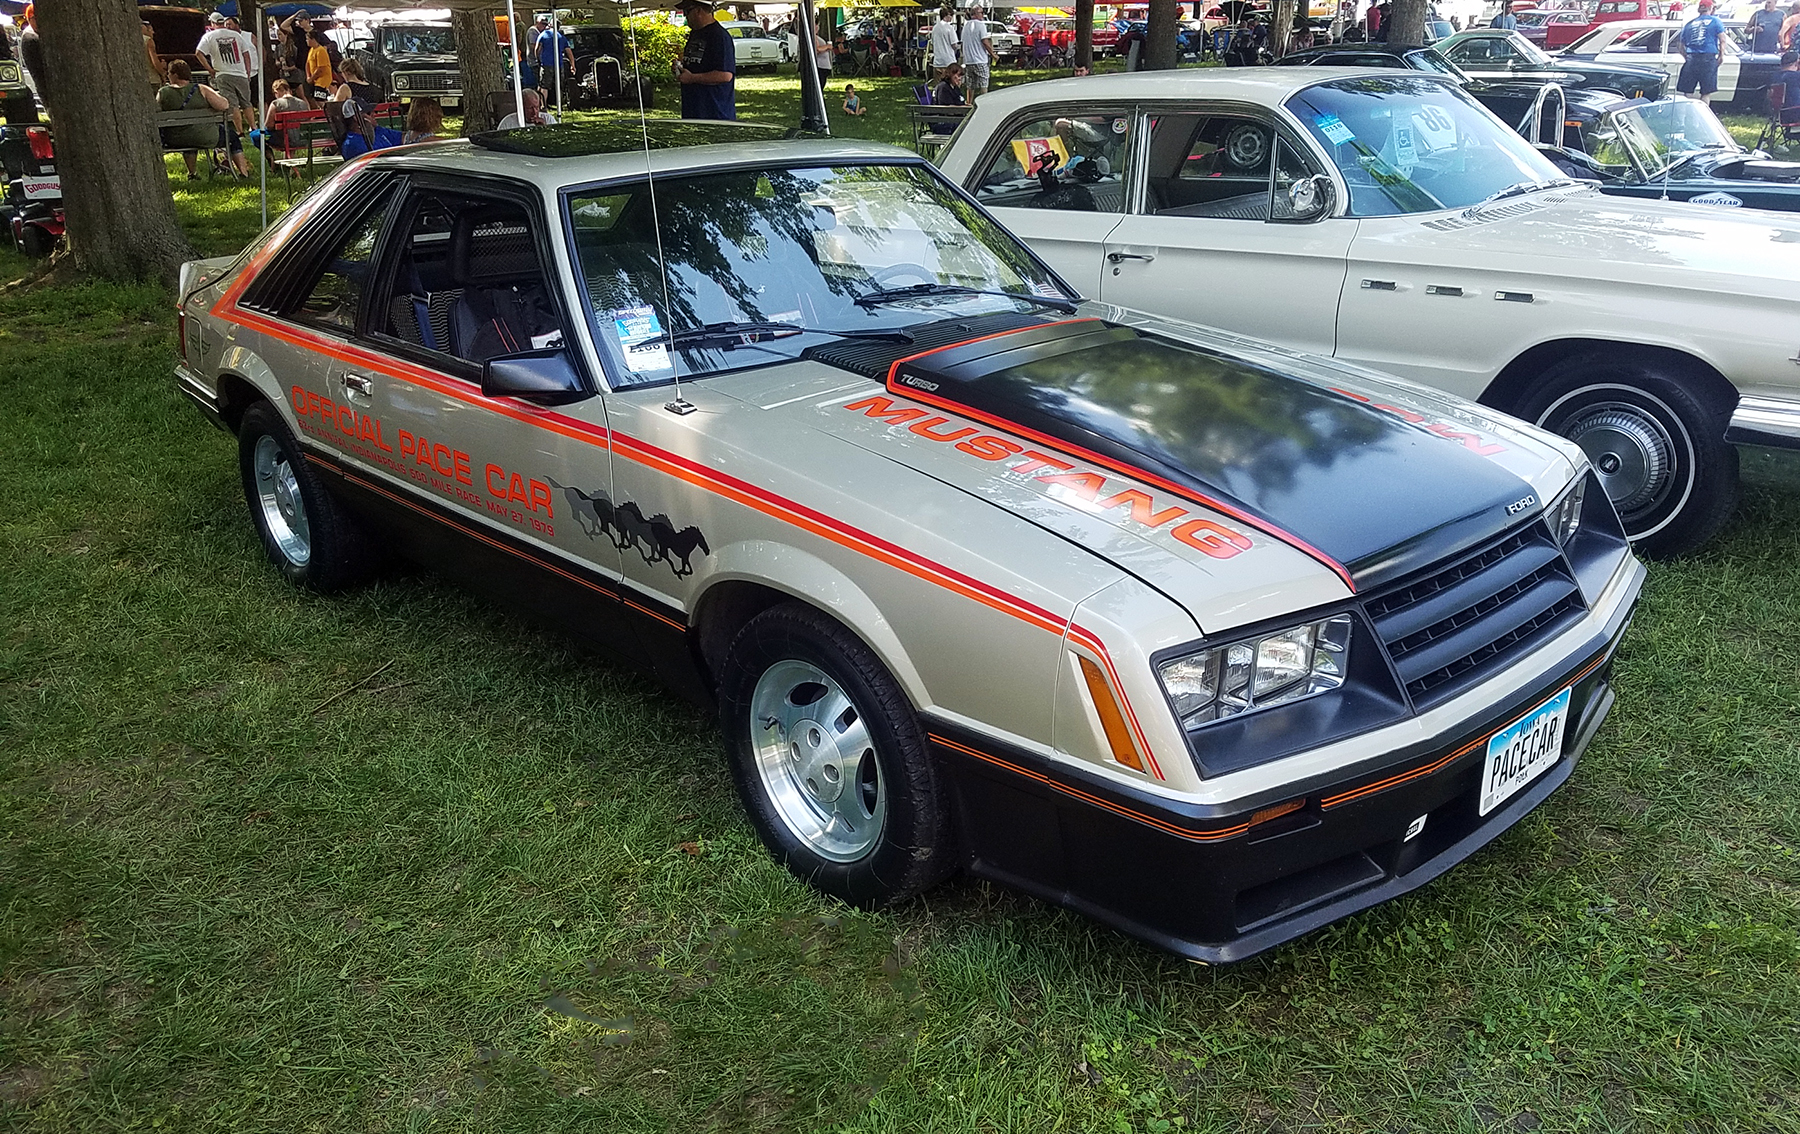 1979 Ford Mustang Indy Pace Car Replica